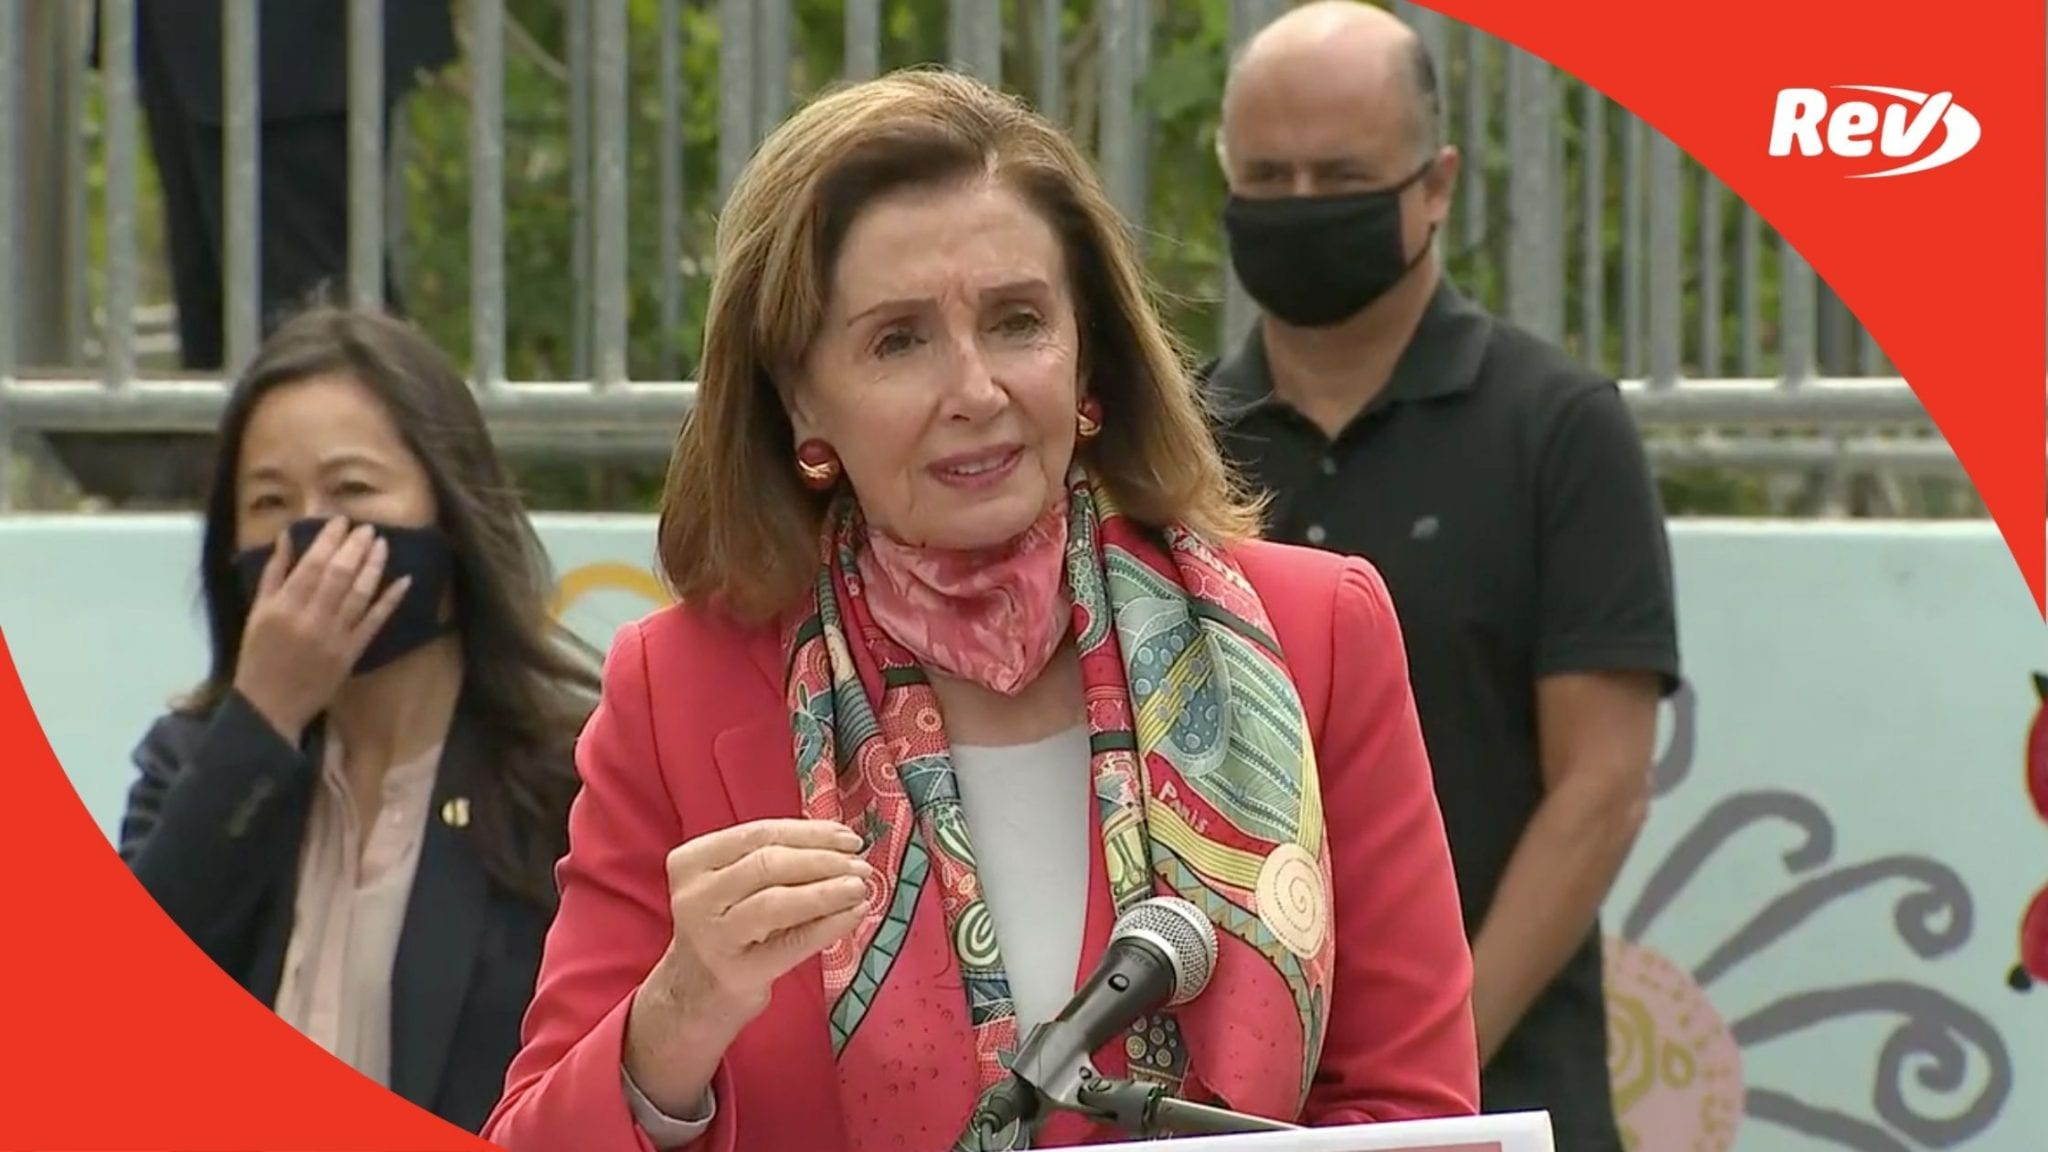 Nancy Pelosi Remarks About Children & COVID-19 Transcript September 2